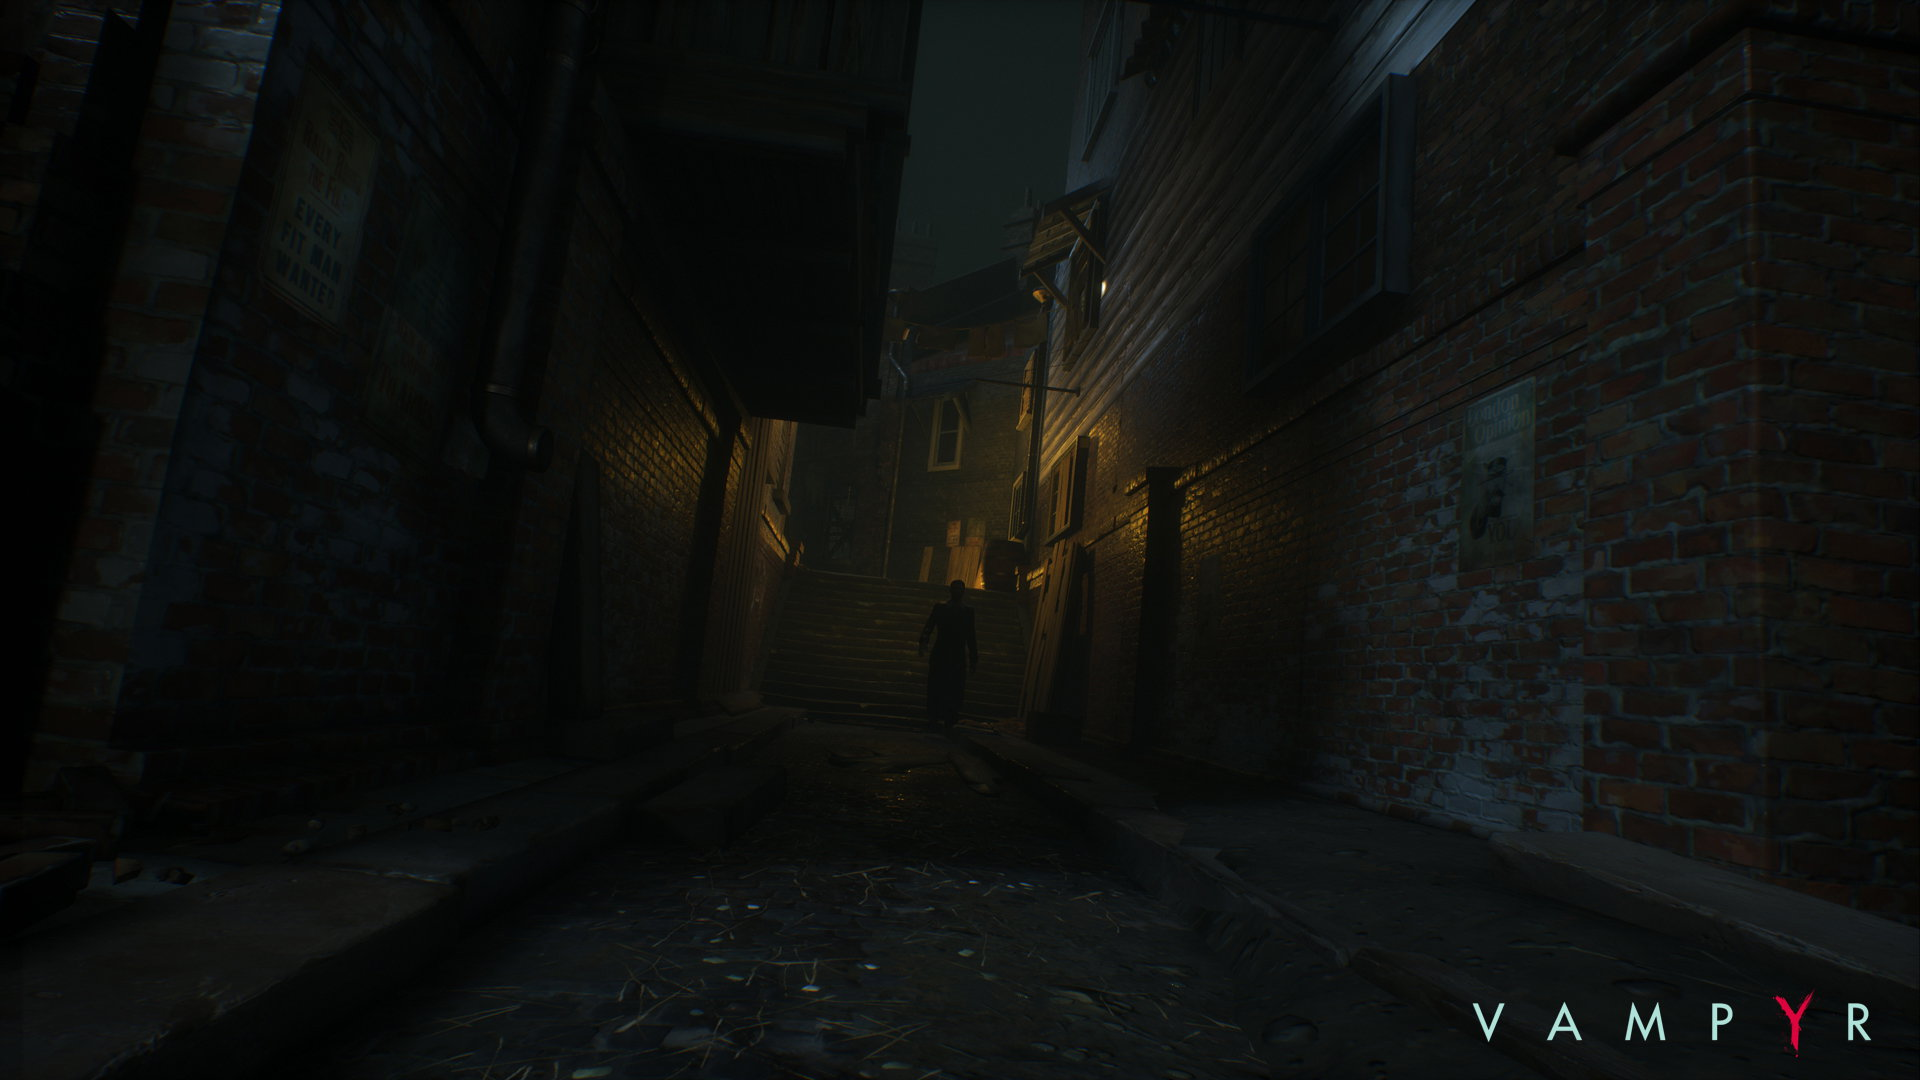 Vampyr game hd games 4k wallpapers images backgrounds photos vampyr game voltagebd Image collections